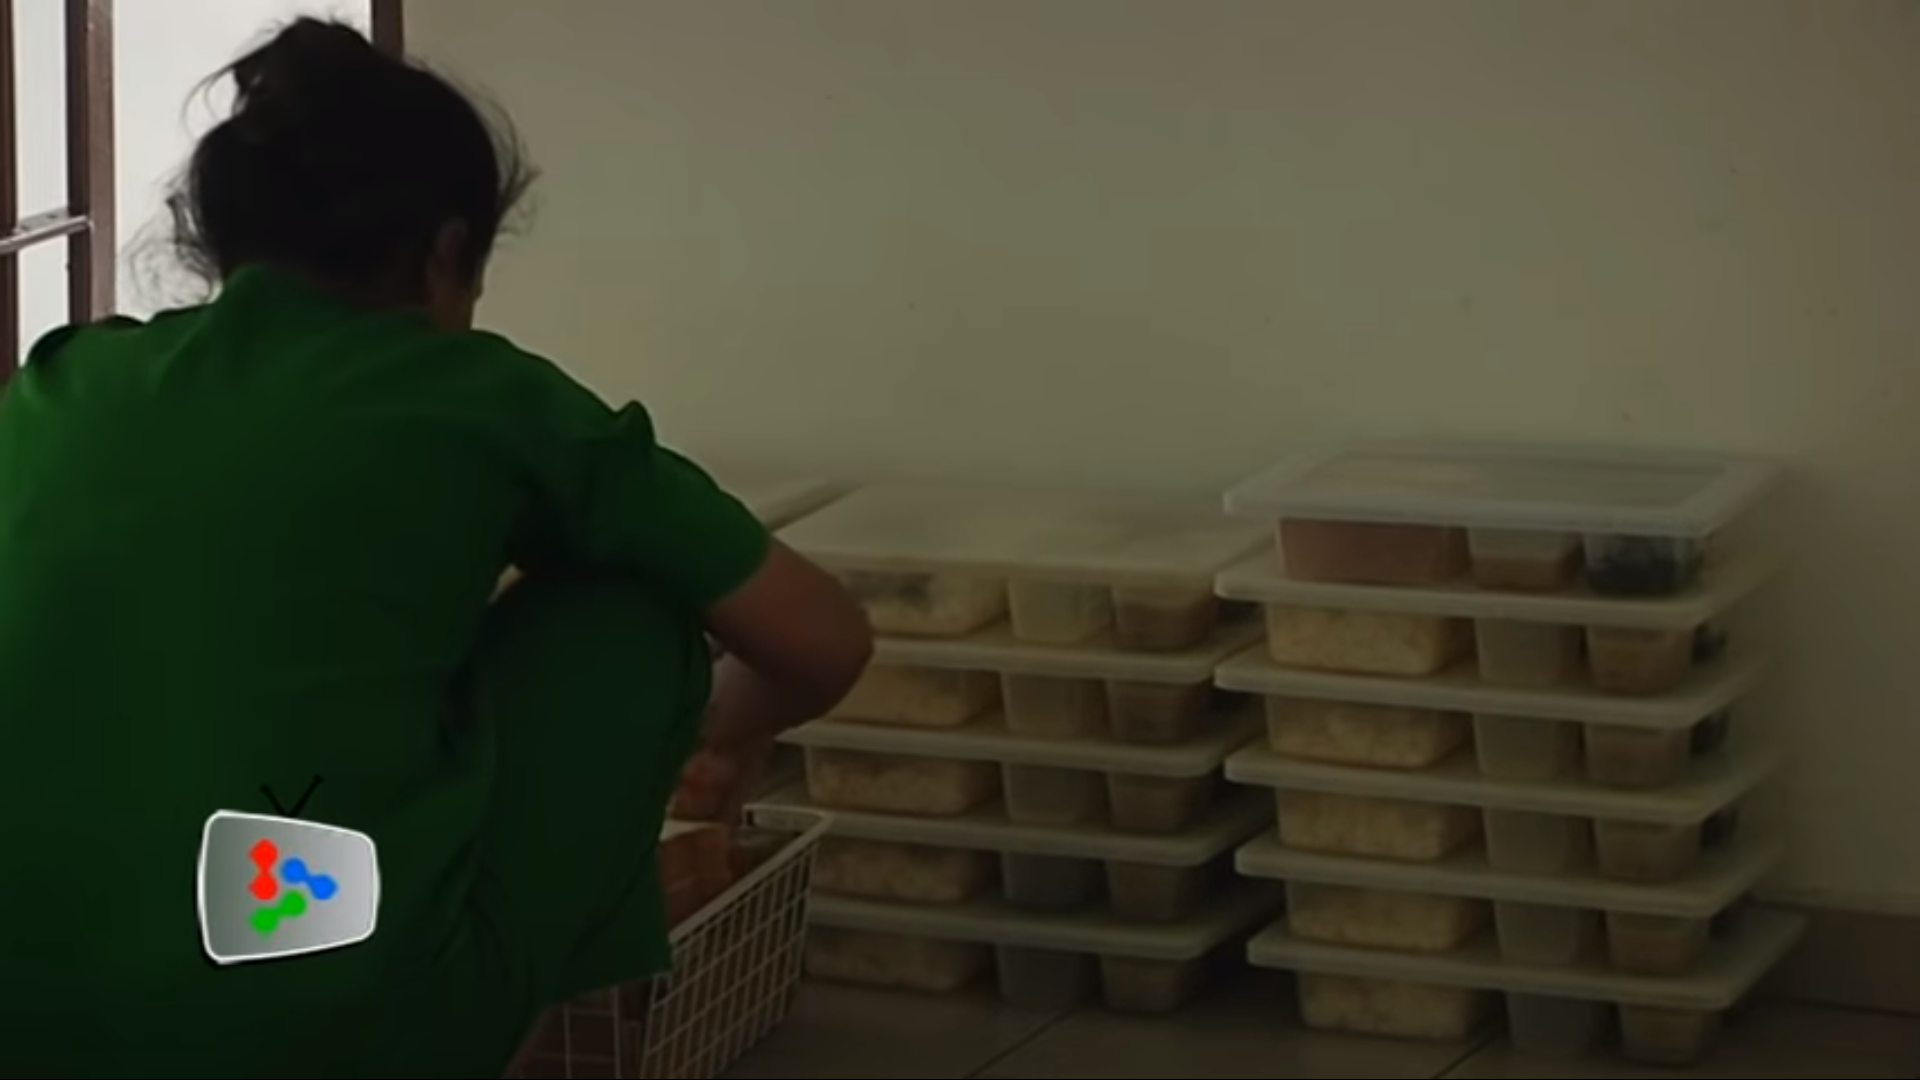 I also saw some inmates preparing food too but I'm not too sure if they were the ones preparing our food. Screengrab from The Star Online's YouTube video